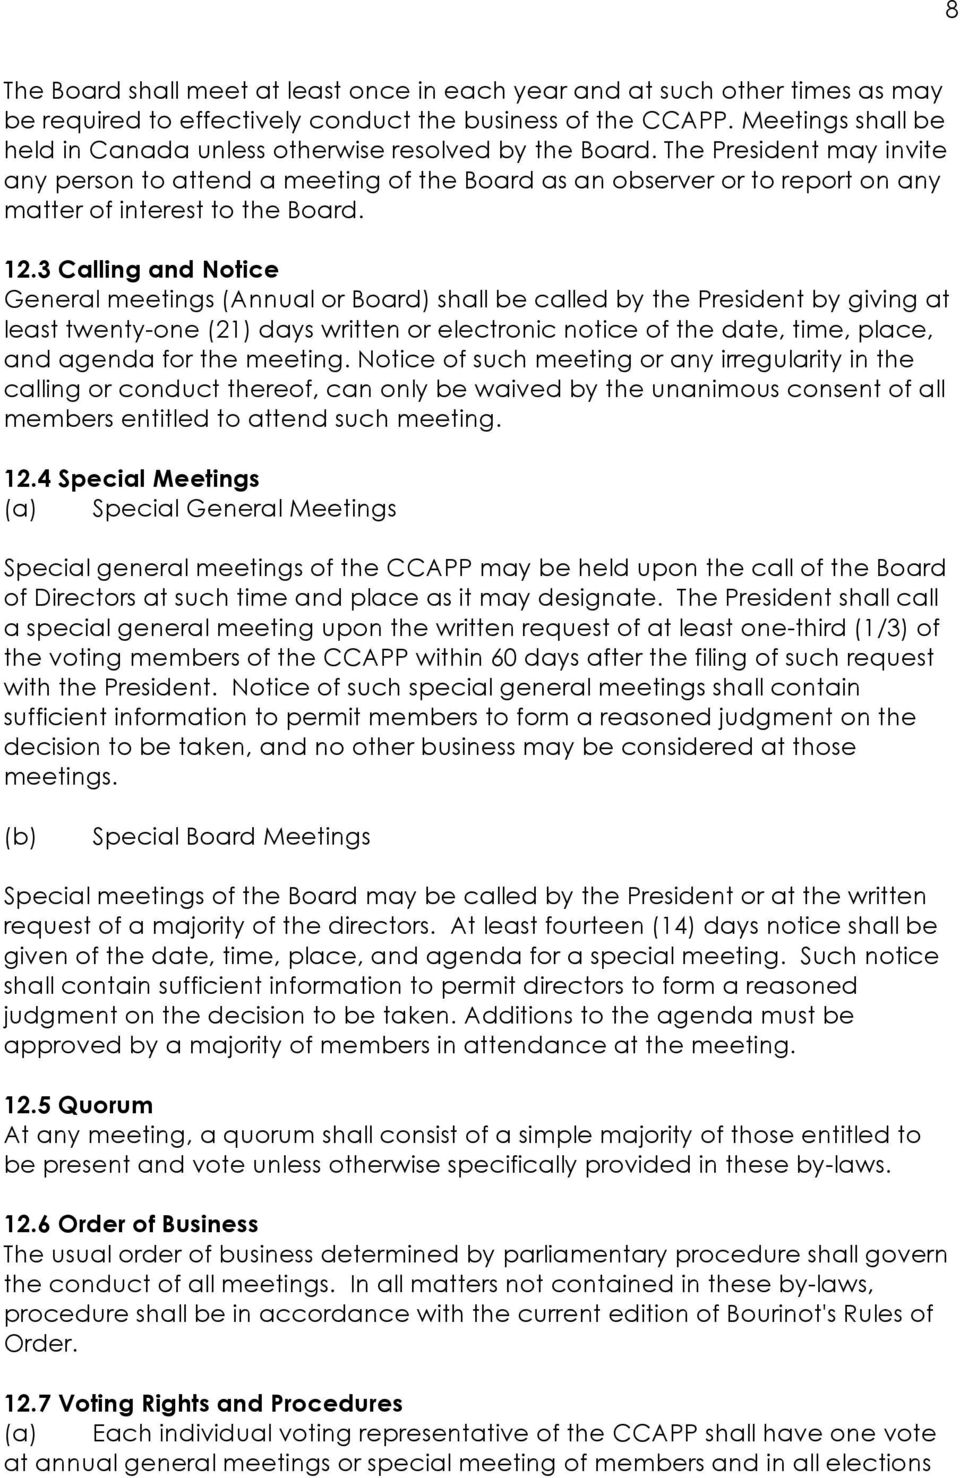 The President may invite any person to attend a meeting of the Board as an observer or to report on any matter of interest to the Board. 12.